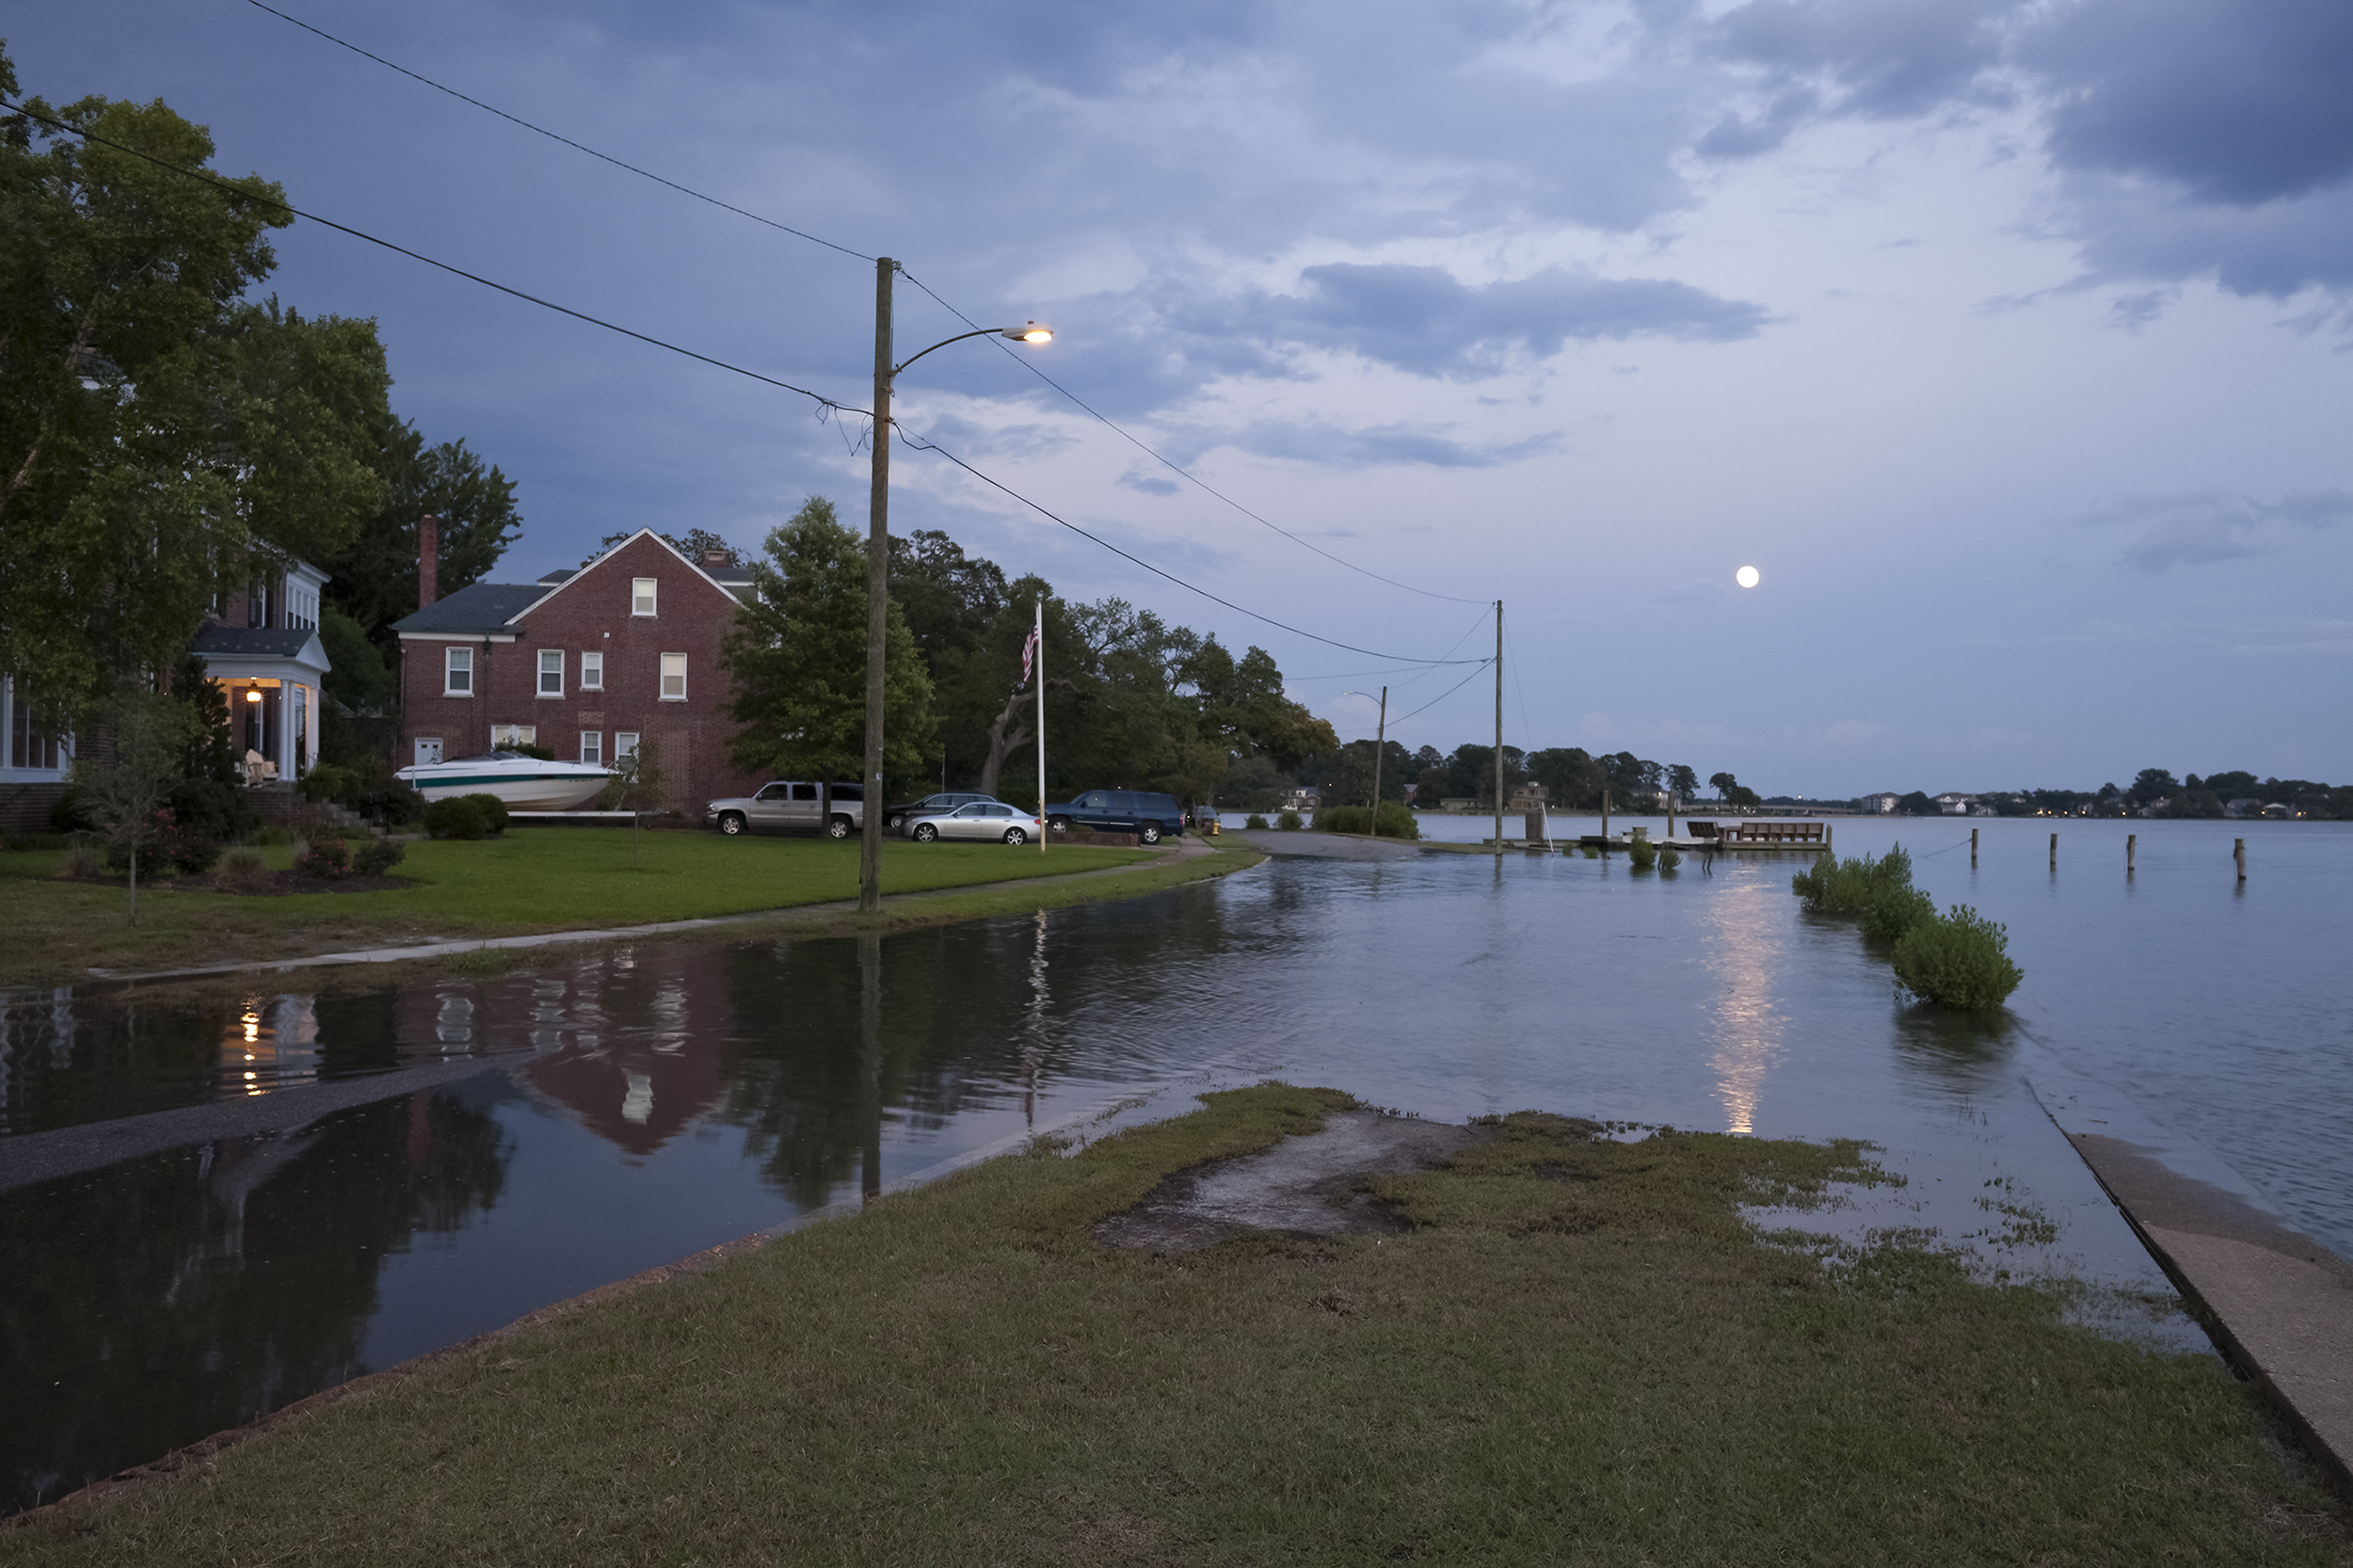 Flooding at High Tide and a Full Moon, Cambridge Place, Norfolk, Virginia, 2012.